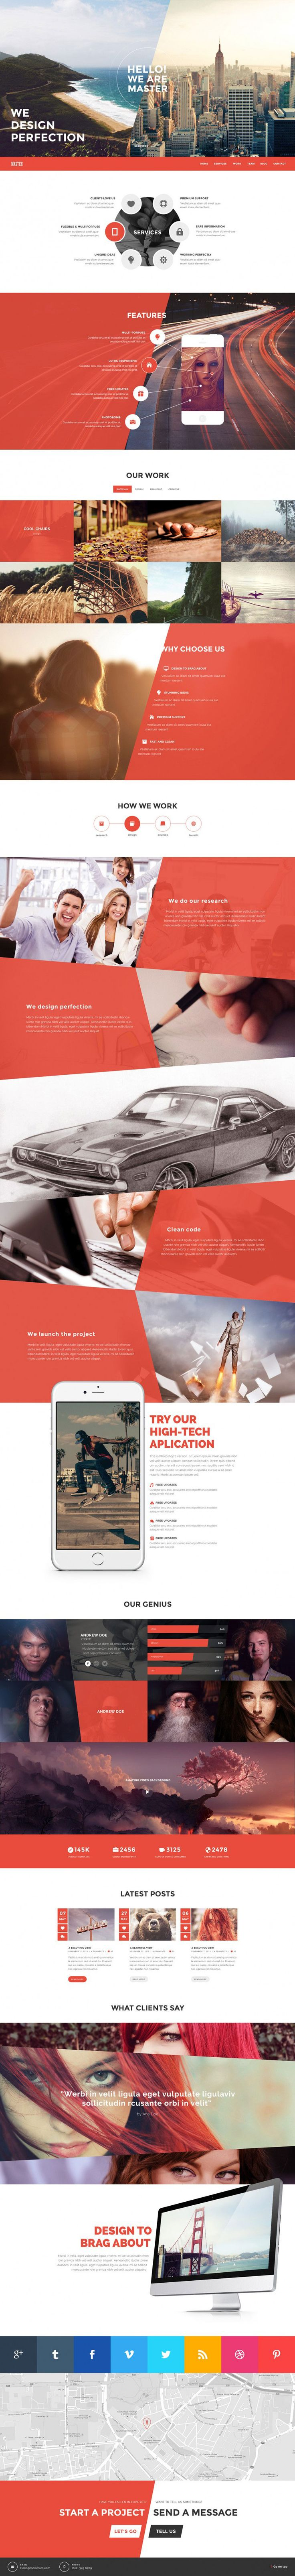 Web Design Project Ideas find this pin and more on graphic design project ideas 20 Creative Website Design Inspiration 2016